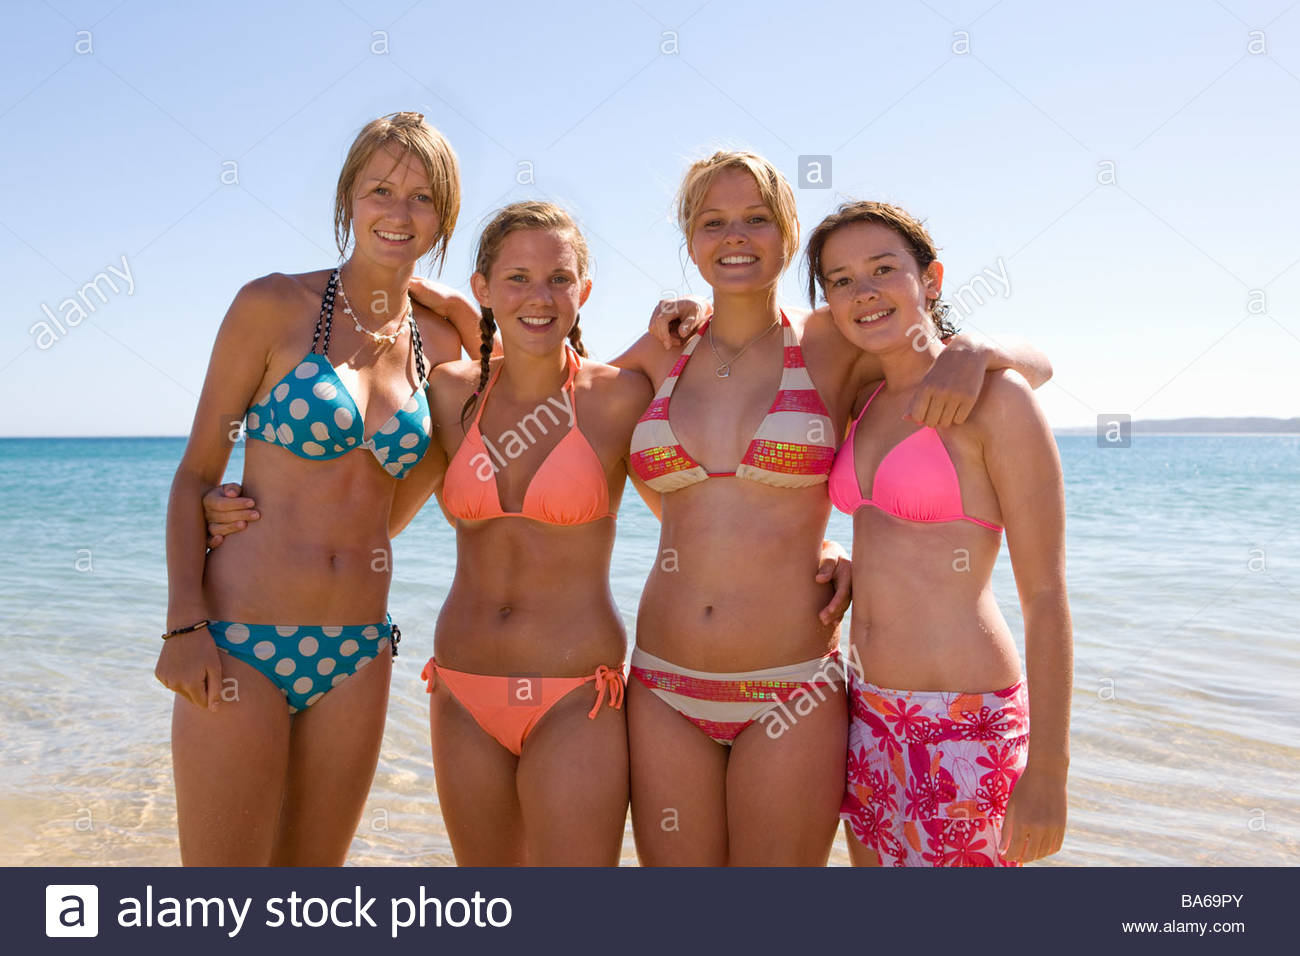 Teenage Girls Posing At Beach